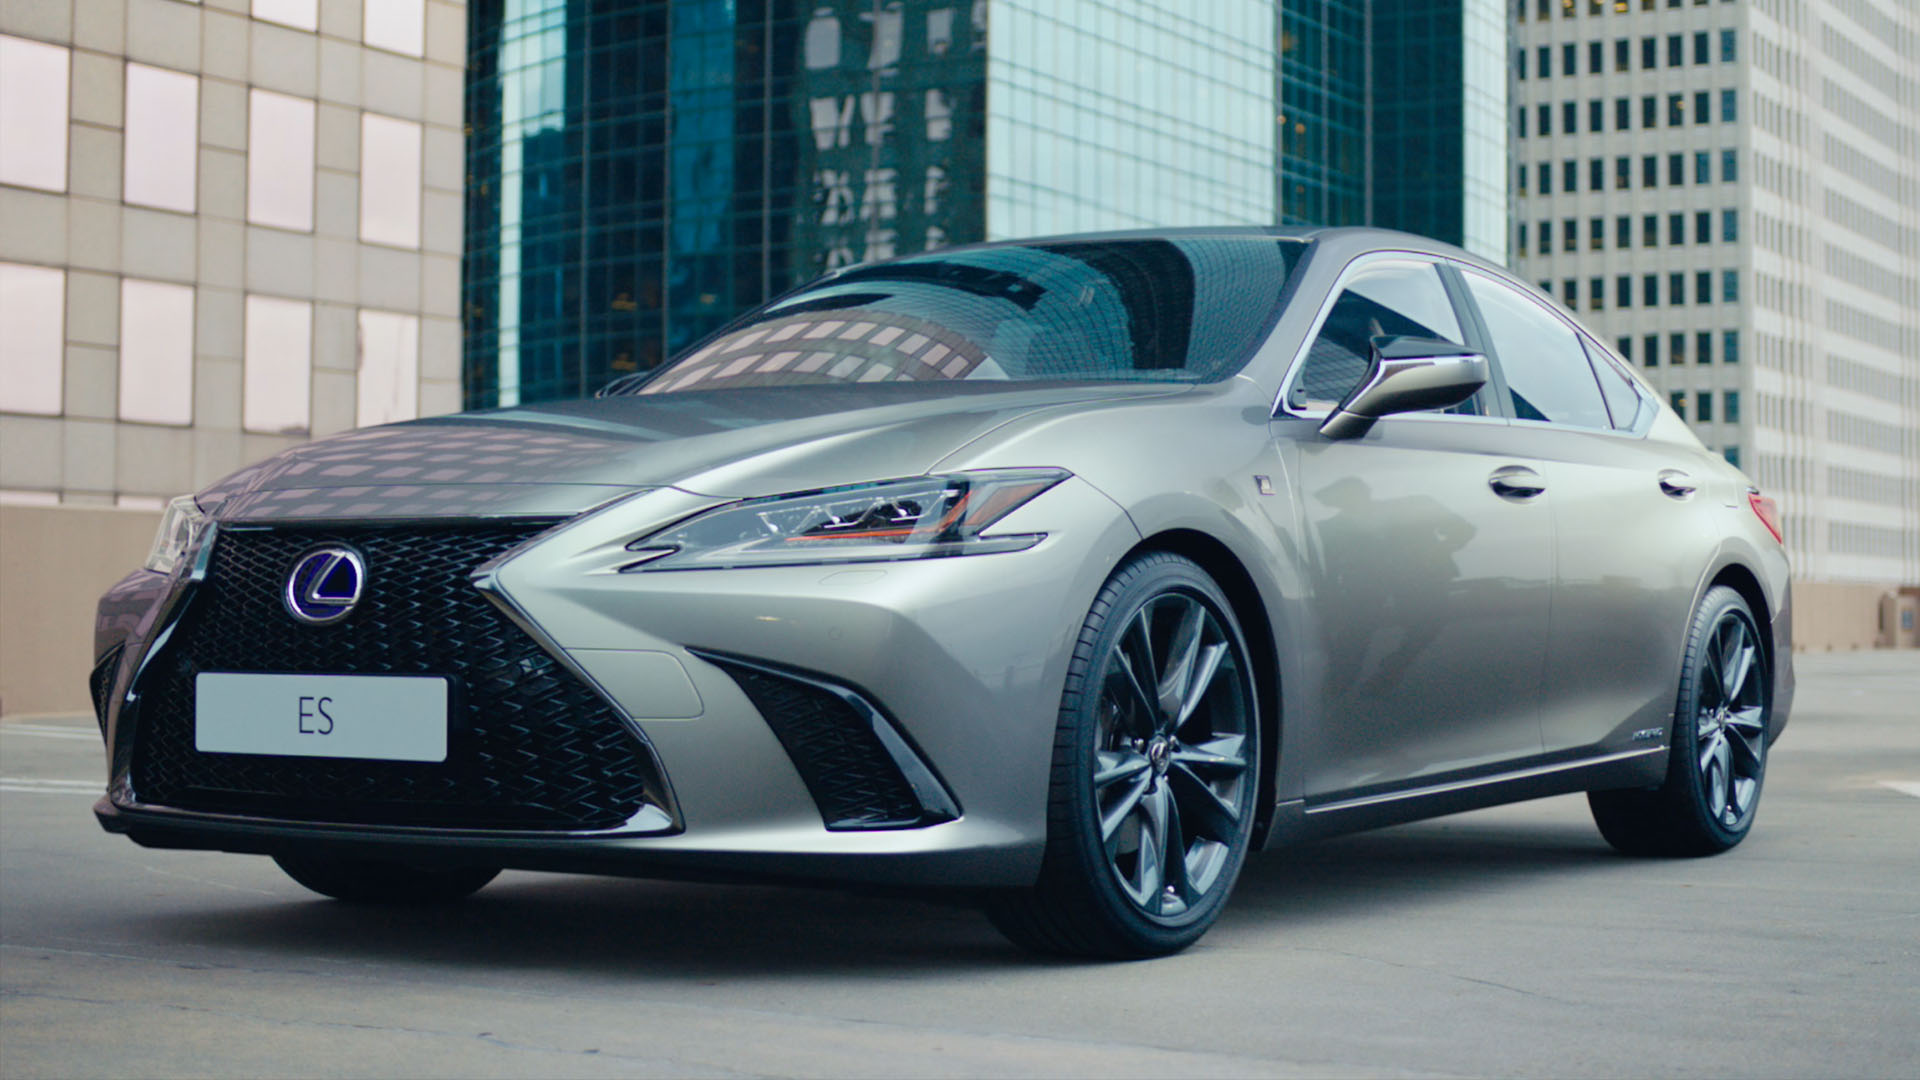 2019 lexus es video 01